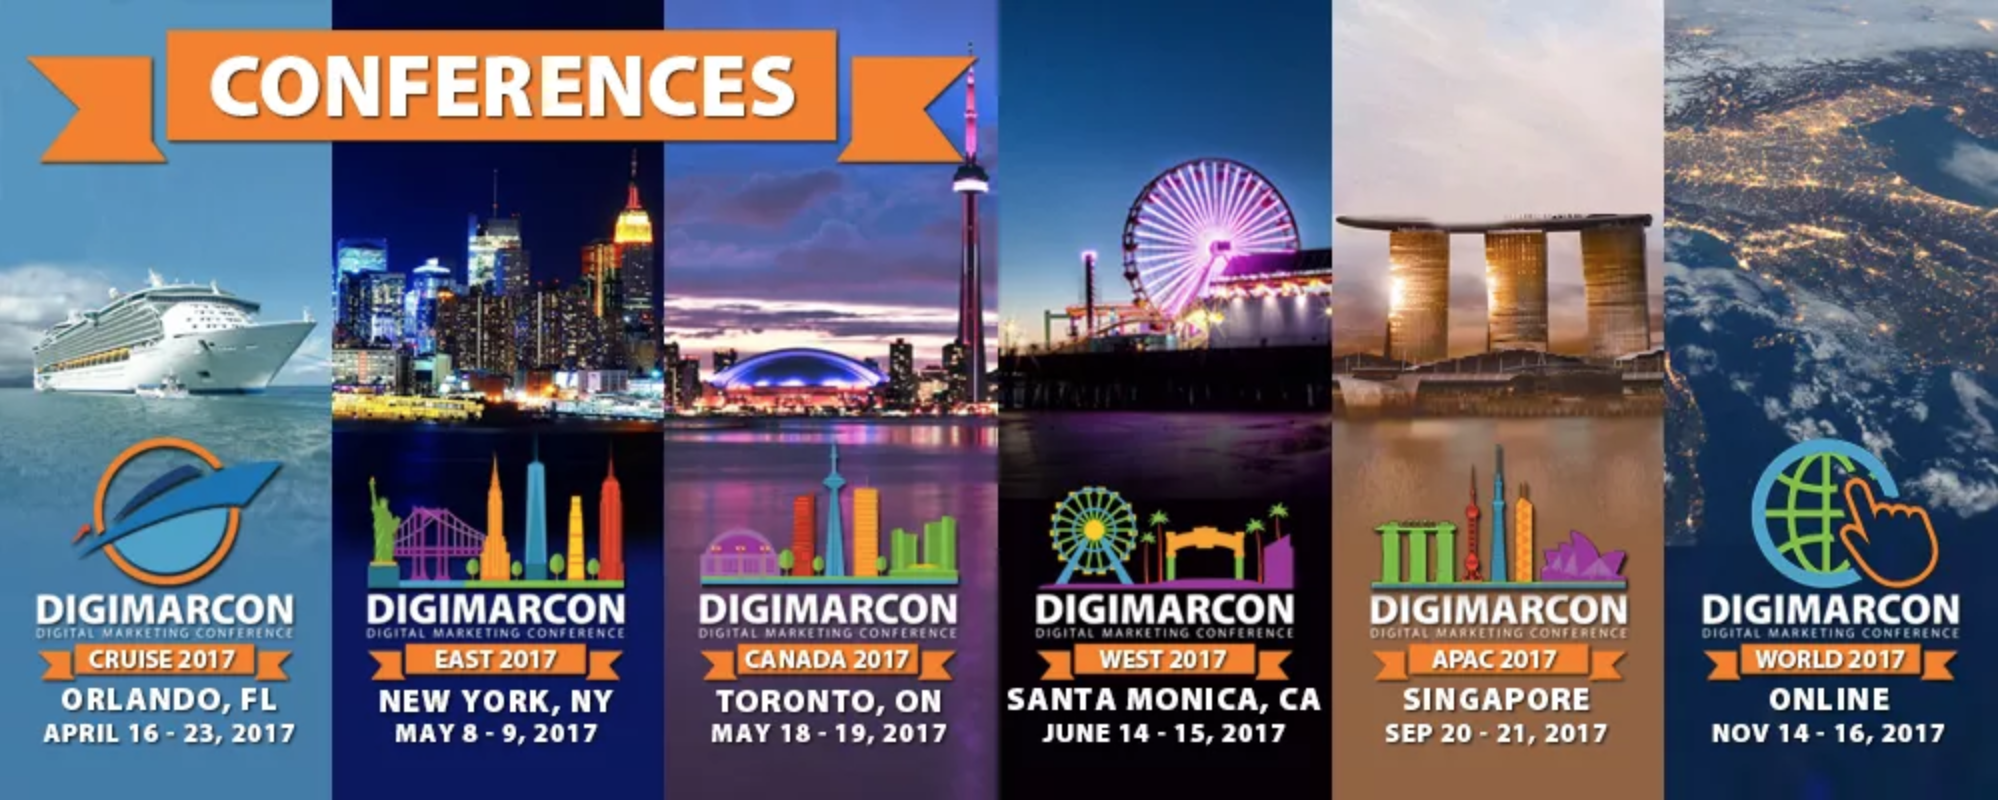 Digimacron conference 2018